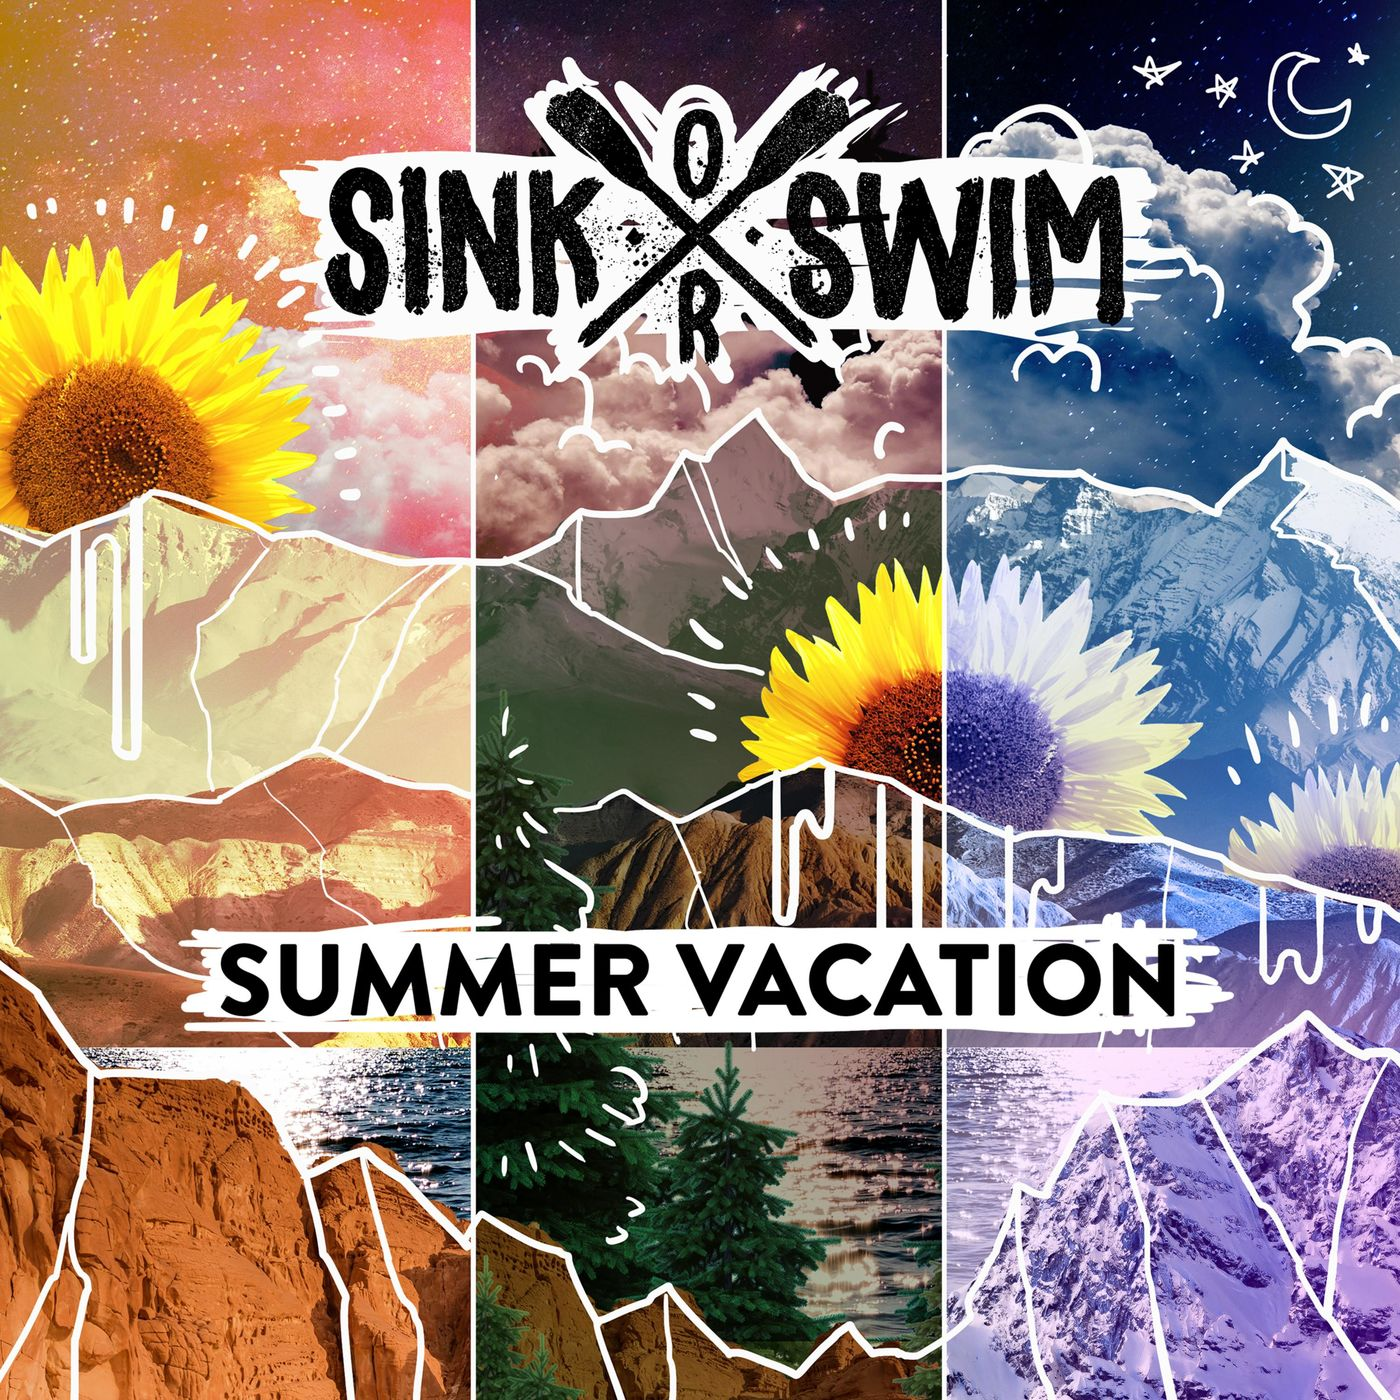 Sink or Swim - Summer Vacation [single] (2019)